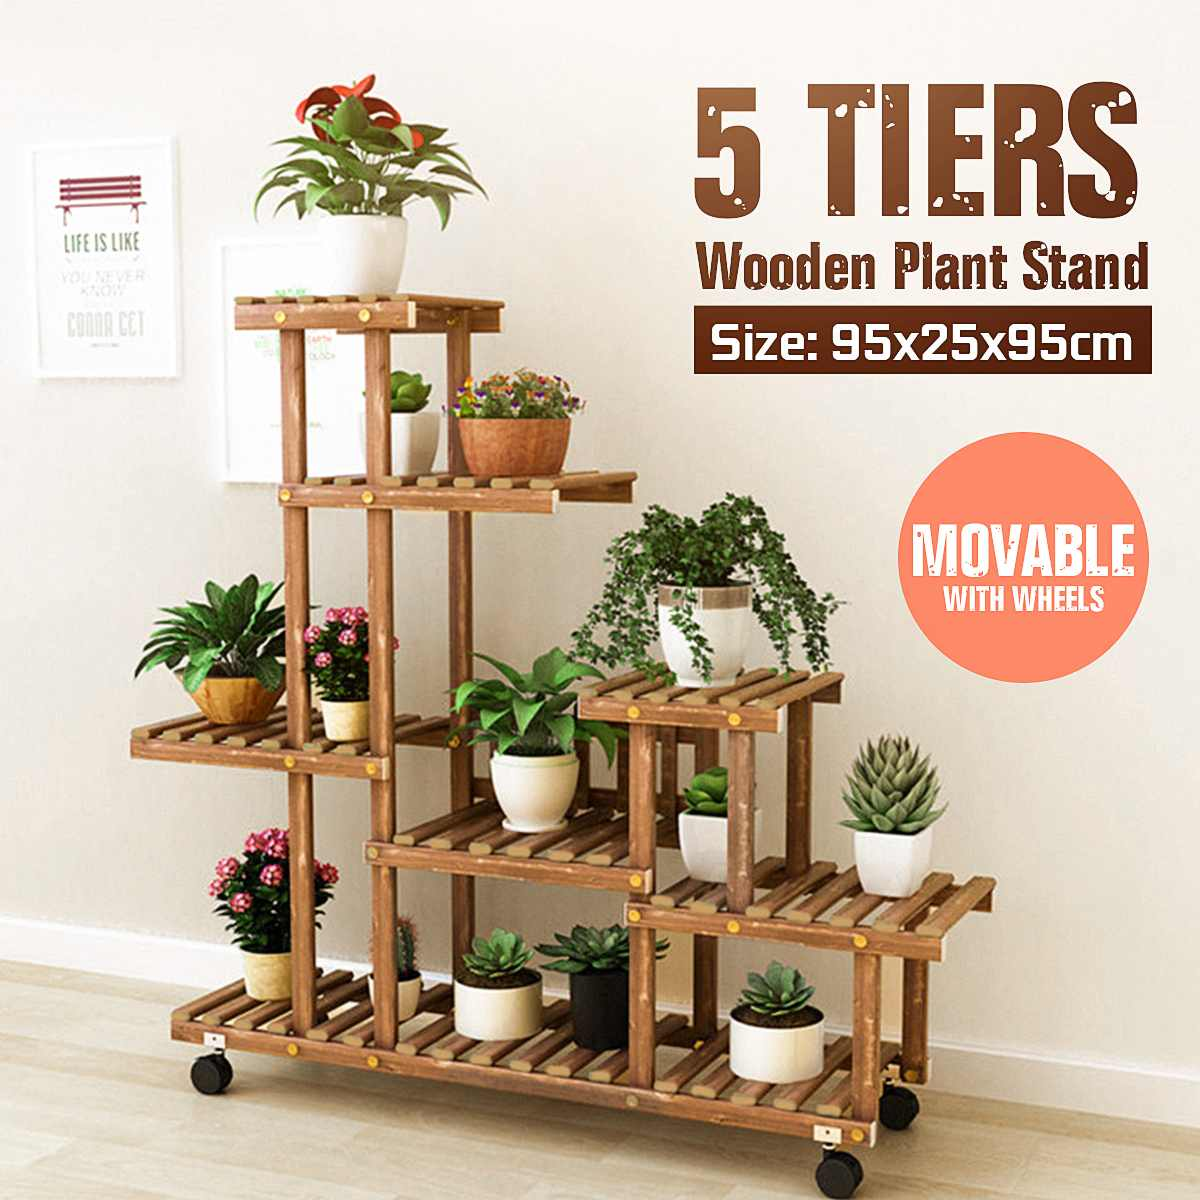 5 Tiers Wooden Flower Rack Plant Stand Multi Flower Stand Shelves Bonsai Display Shelf Yard Garden Patio Balcony Flower Stands